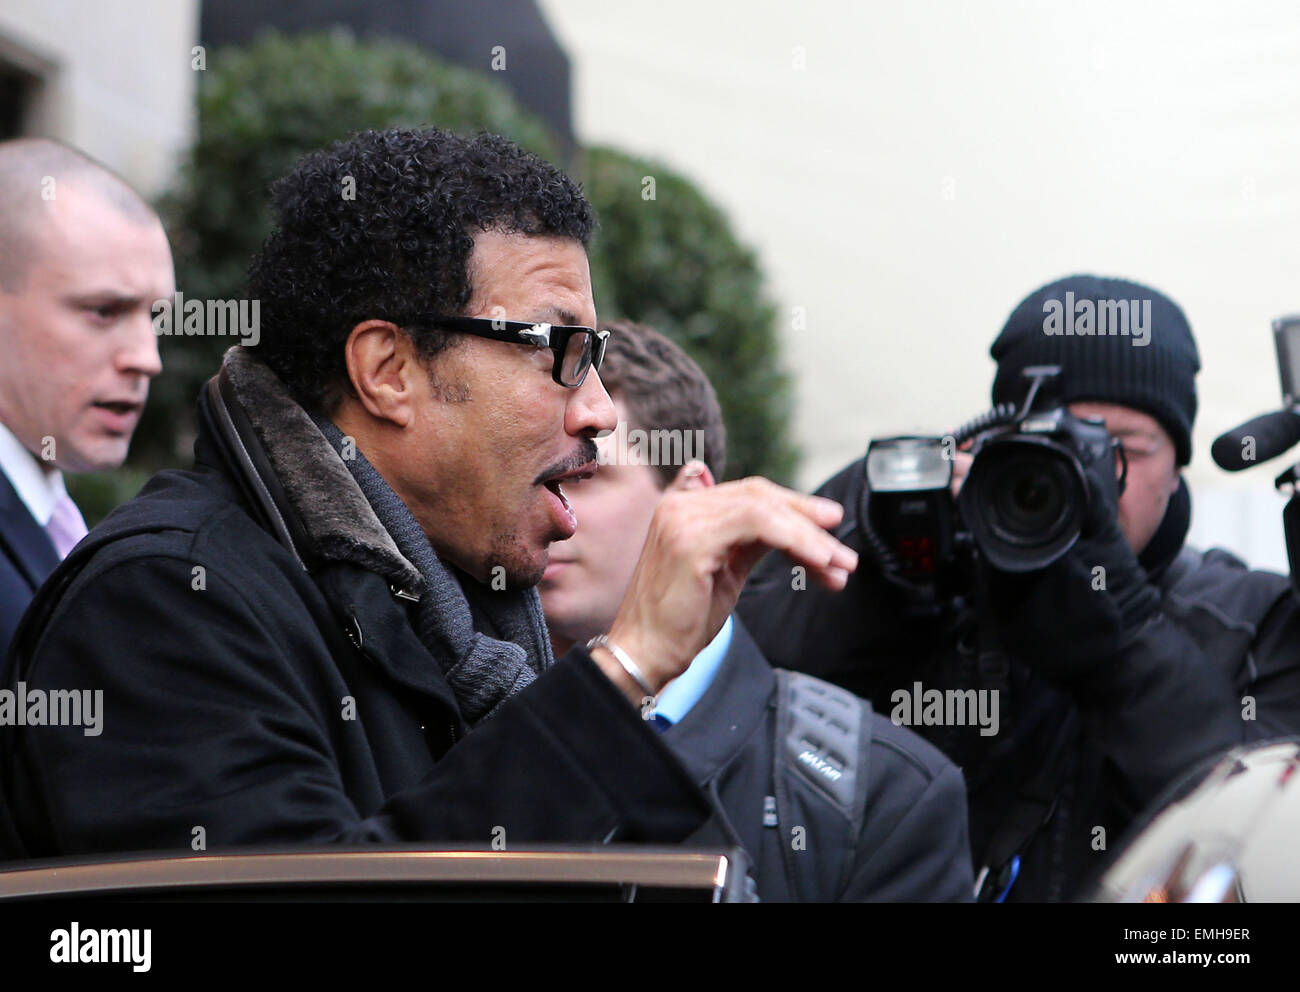 30.NOVEMBER.2012. PARIS US-SÄNGER LIONEL RICHIE IST FLECKIG, LEAVING THE FOUR SEASONS HOTEL GEORGE V IN PARIS, Stockbild